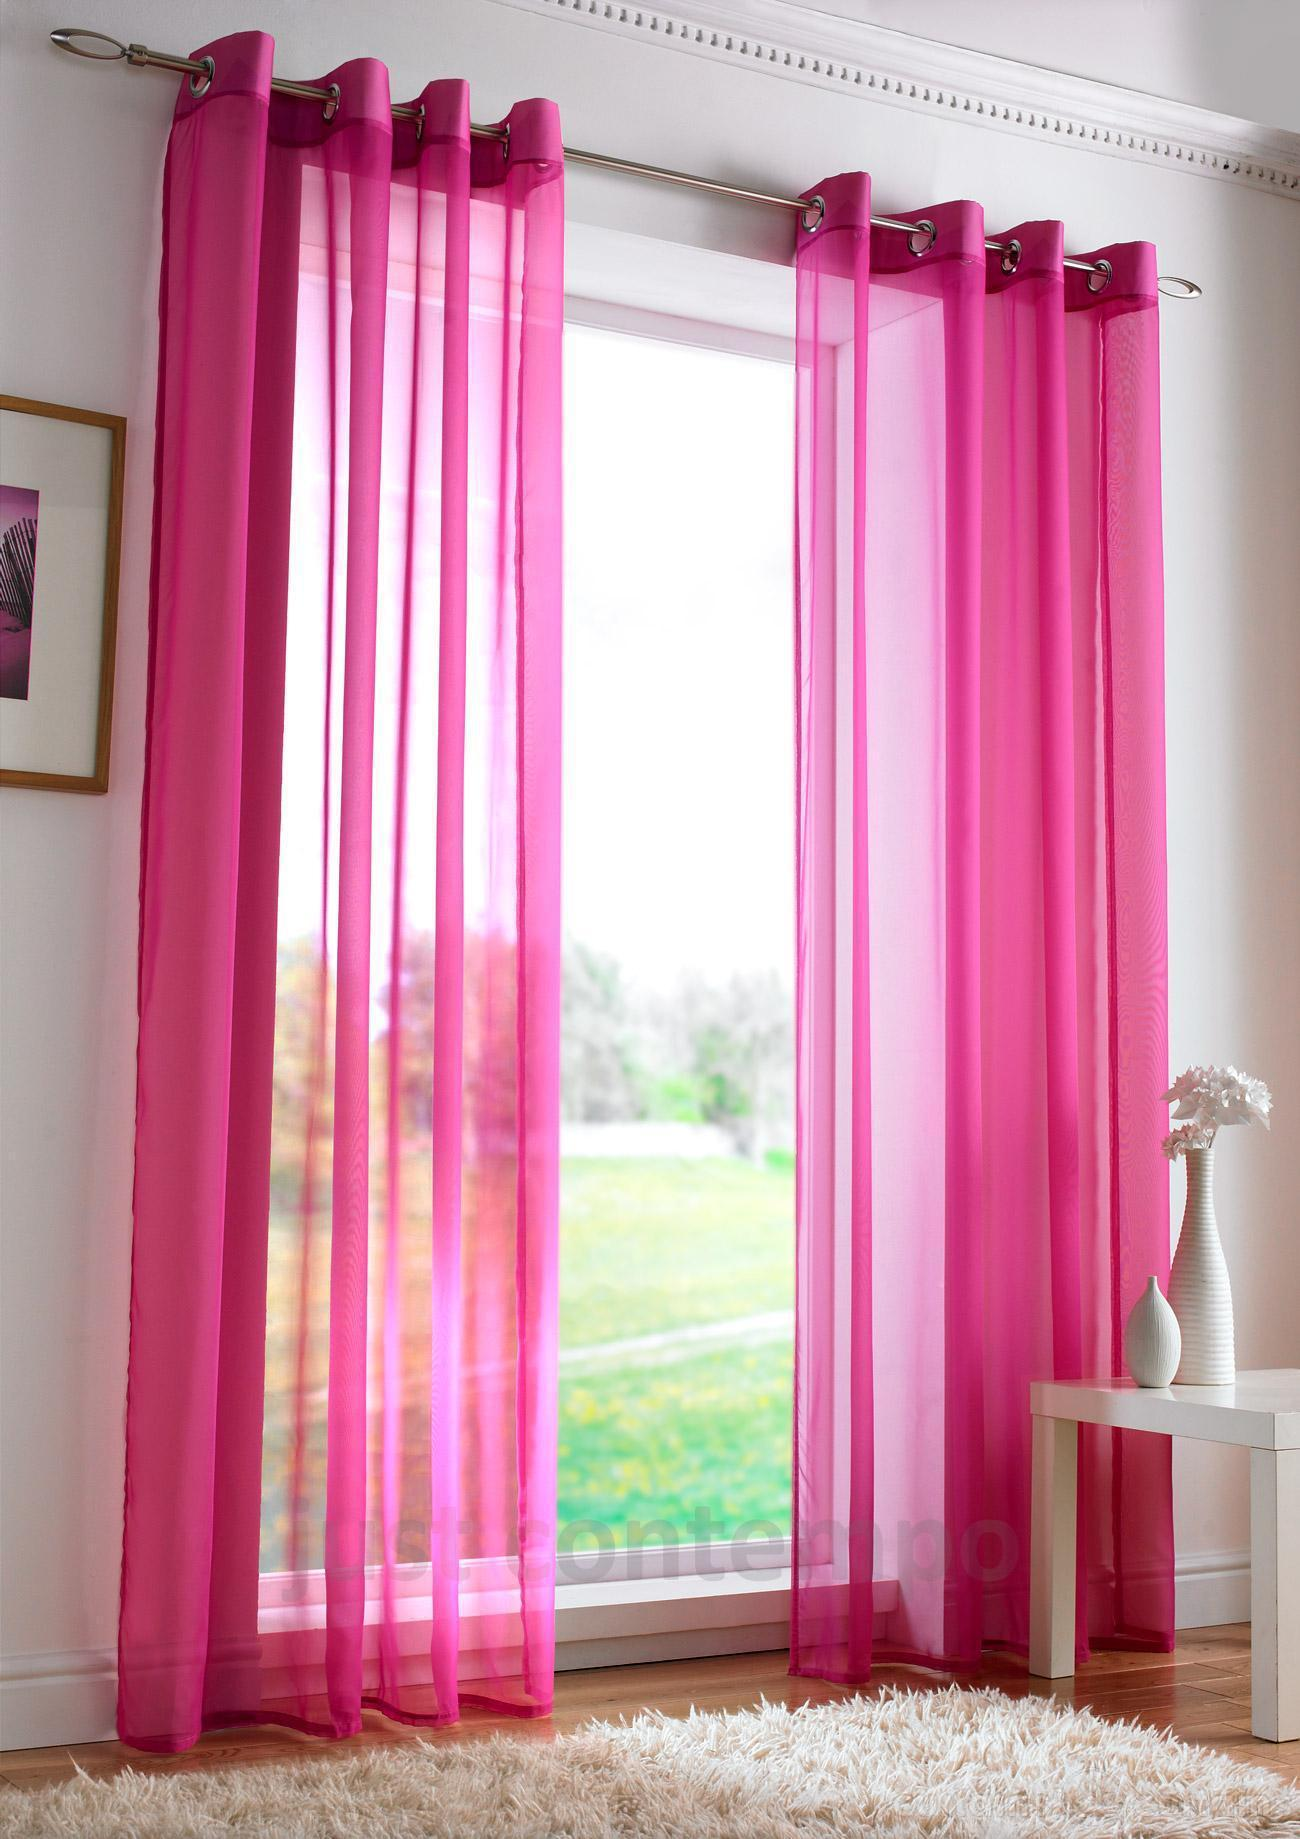 Hot pink curtains - Pink Sheer Curtains